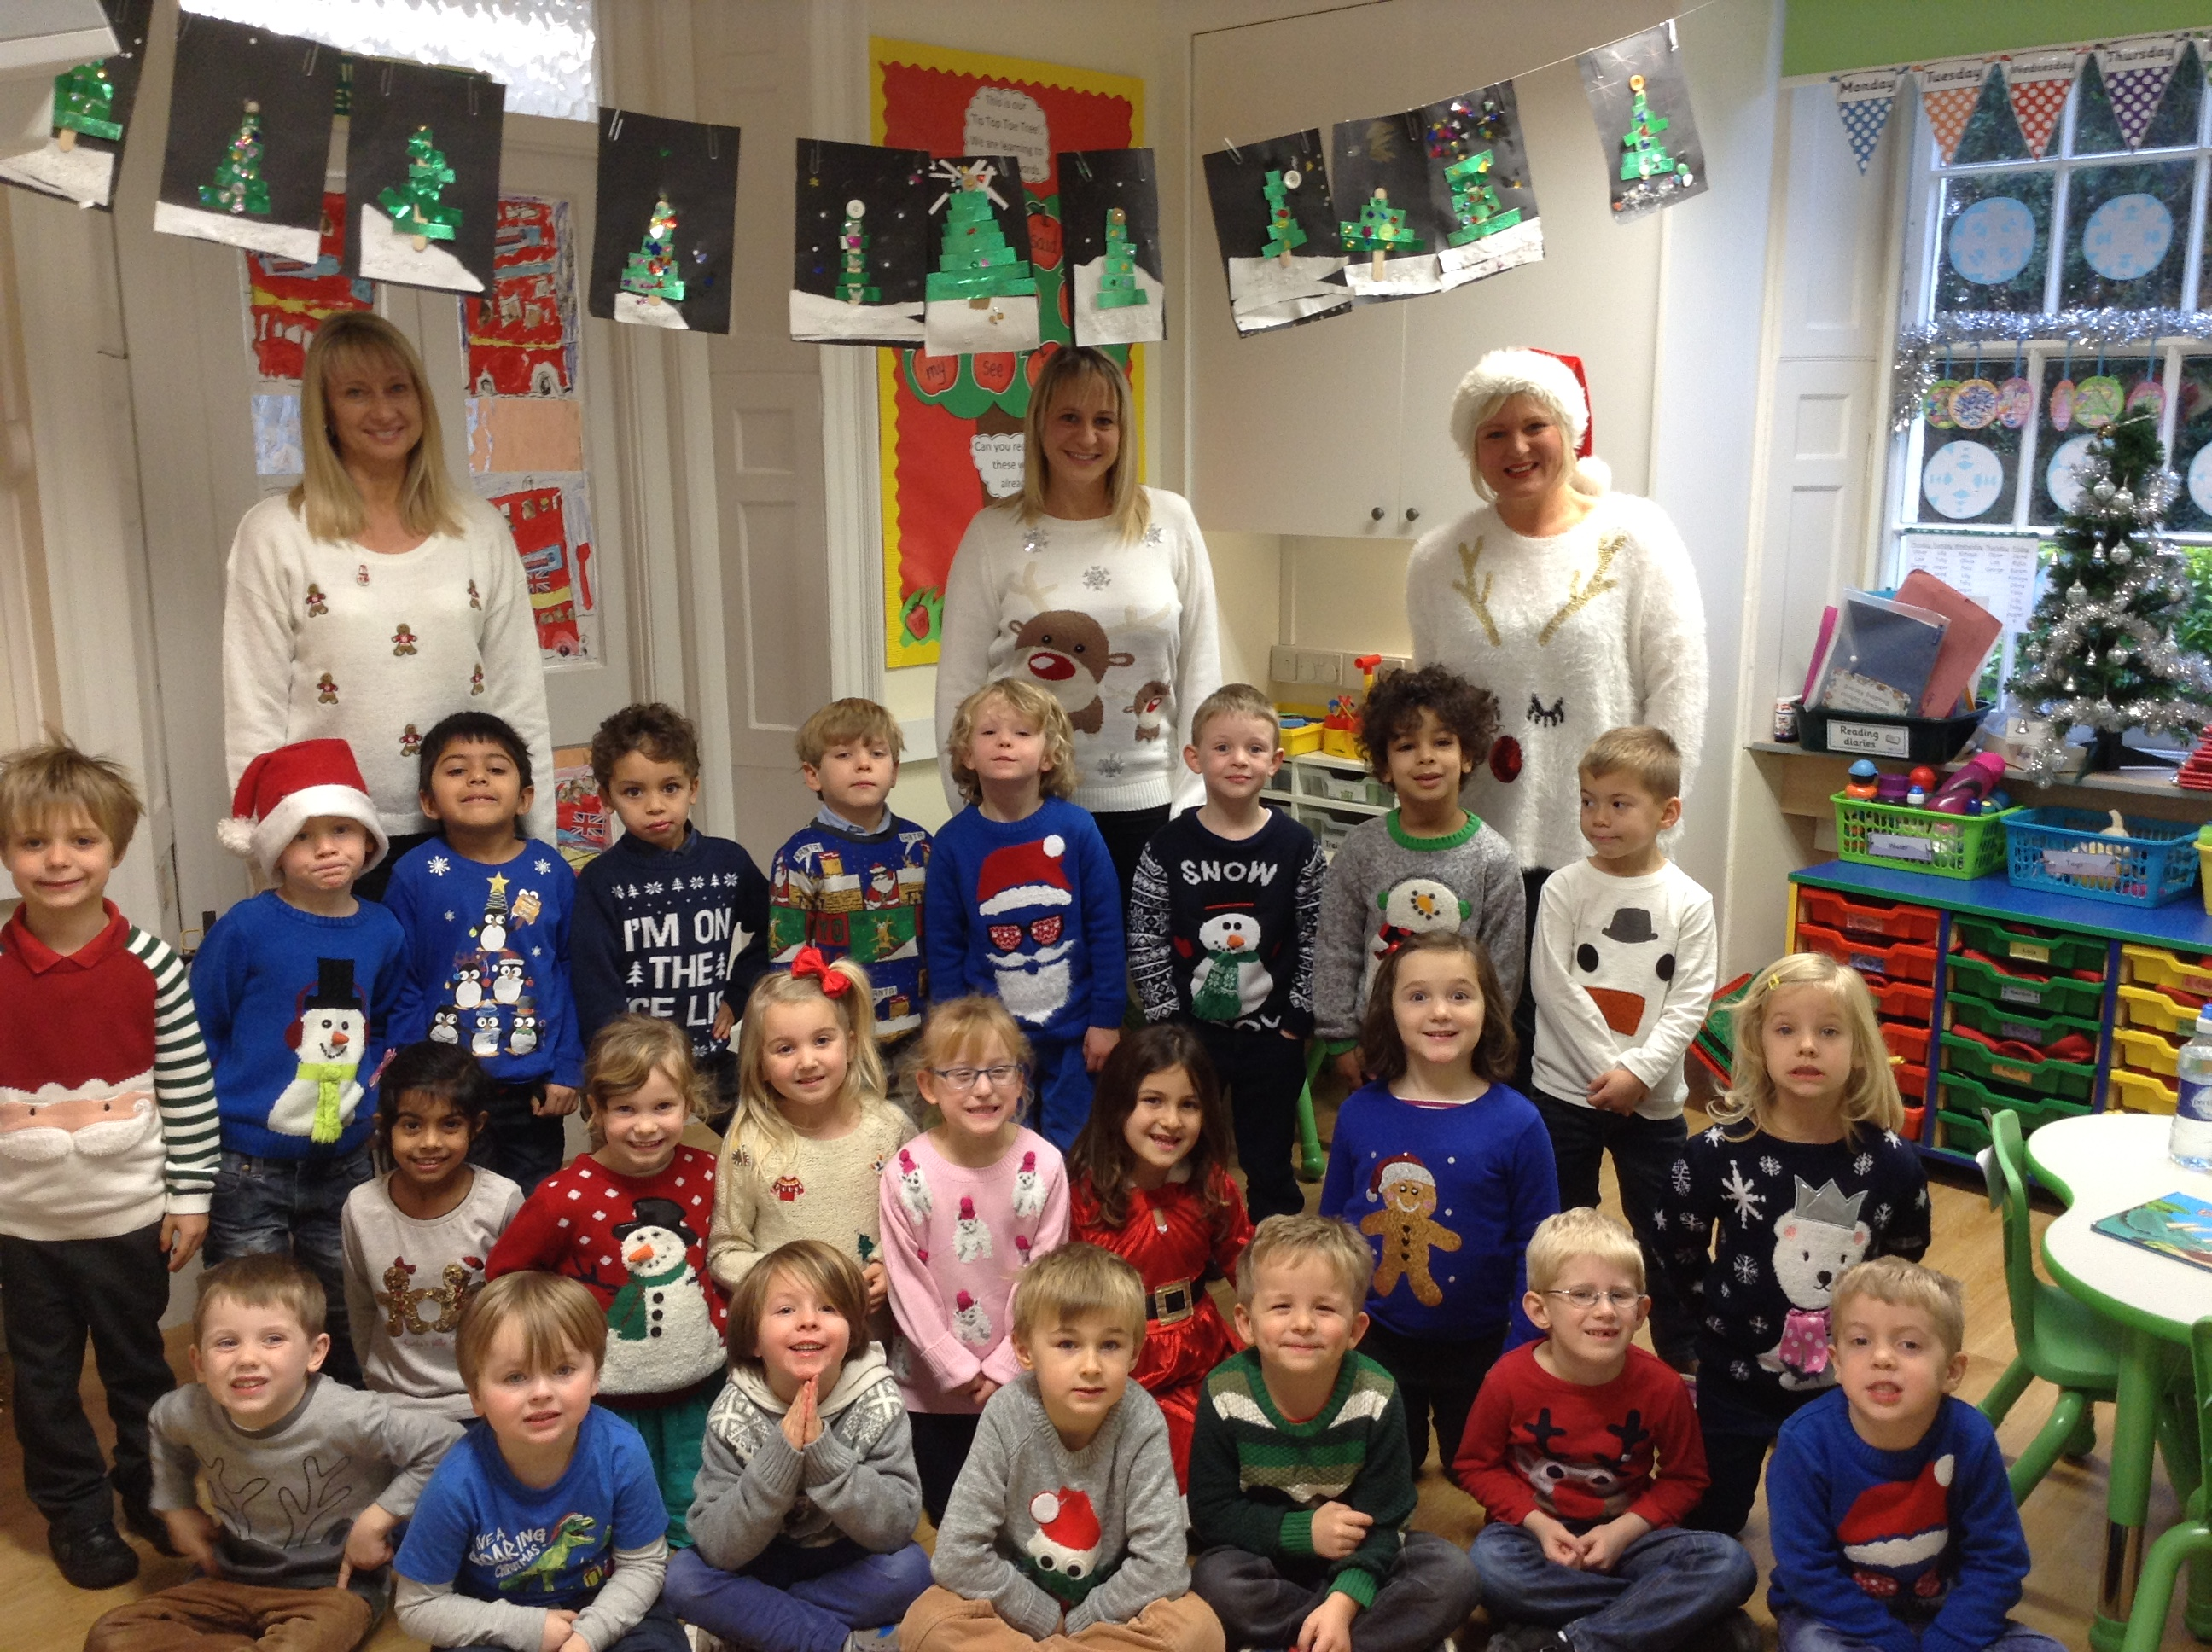 Reception get into the festive spirit with their fantastic Christmas jumpers!